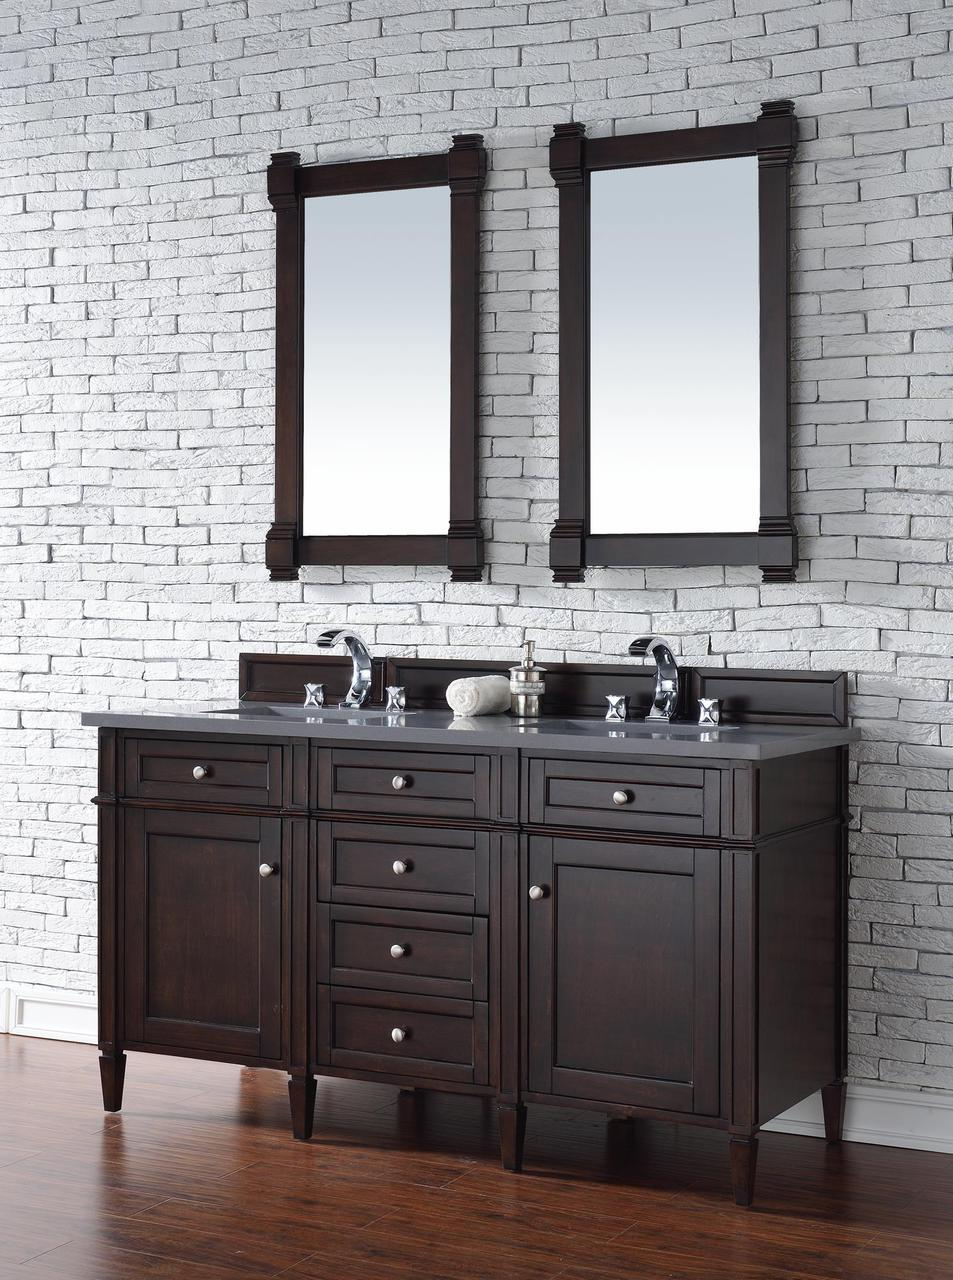 Contemporary 60 Inch Double Sink Bathroom Vanity Gany Finish